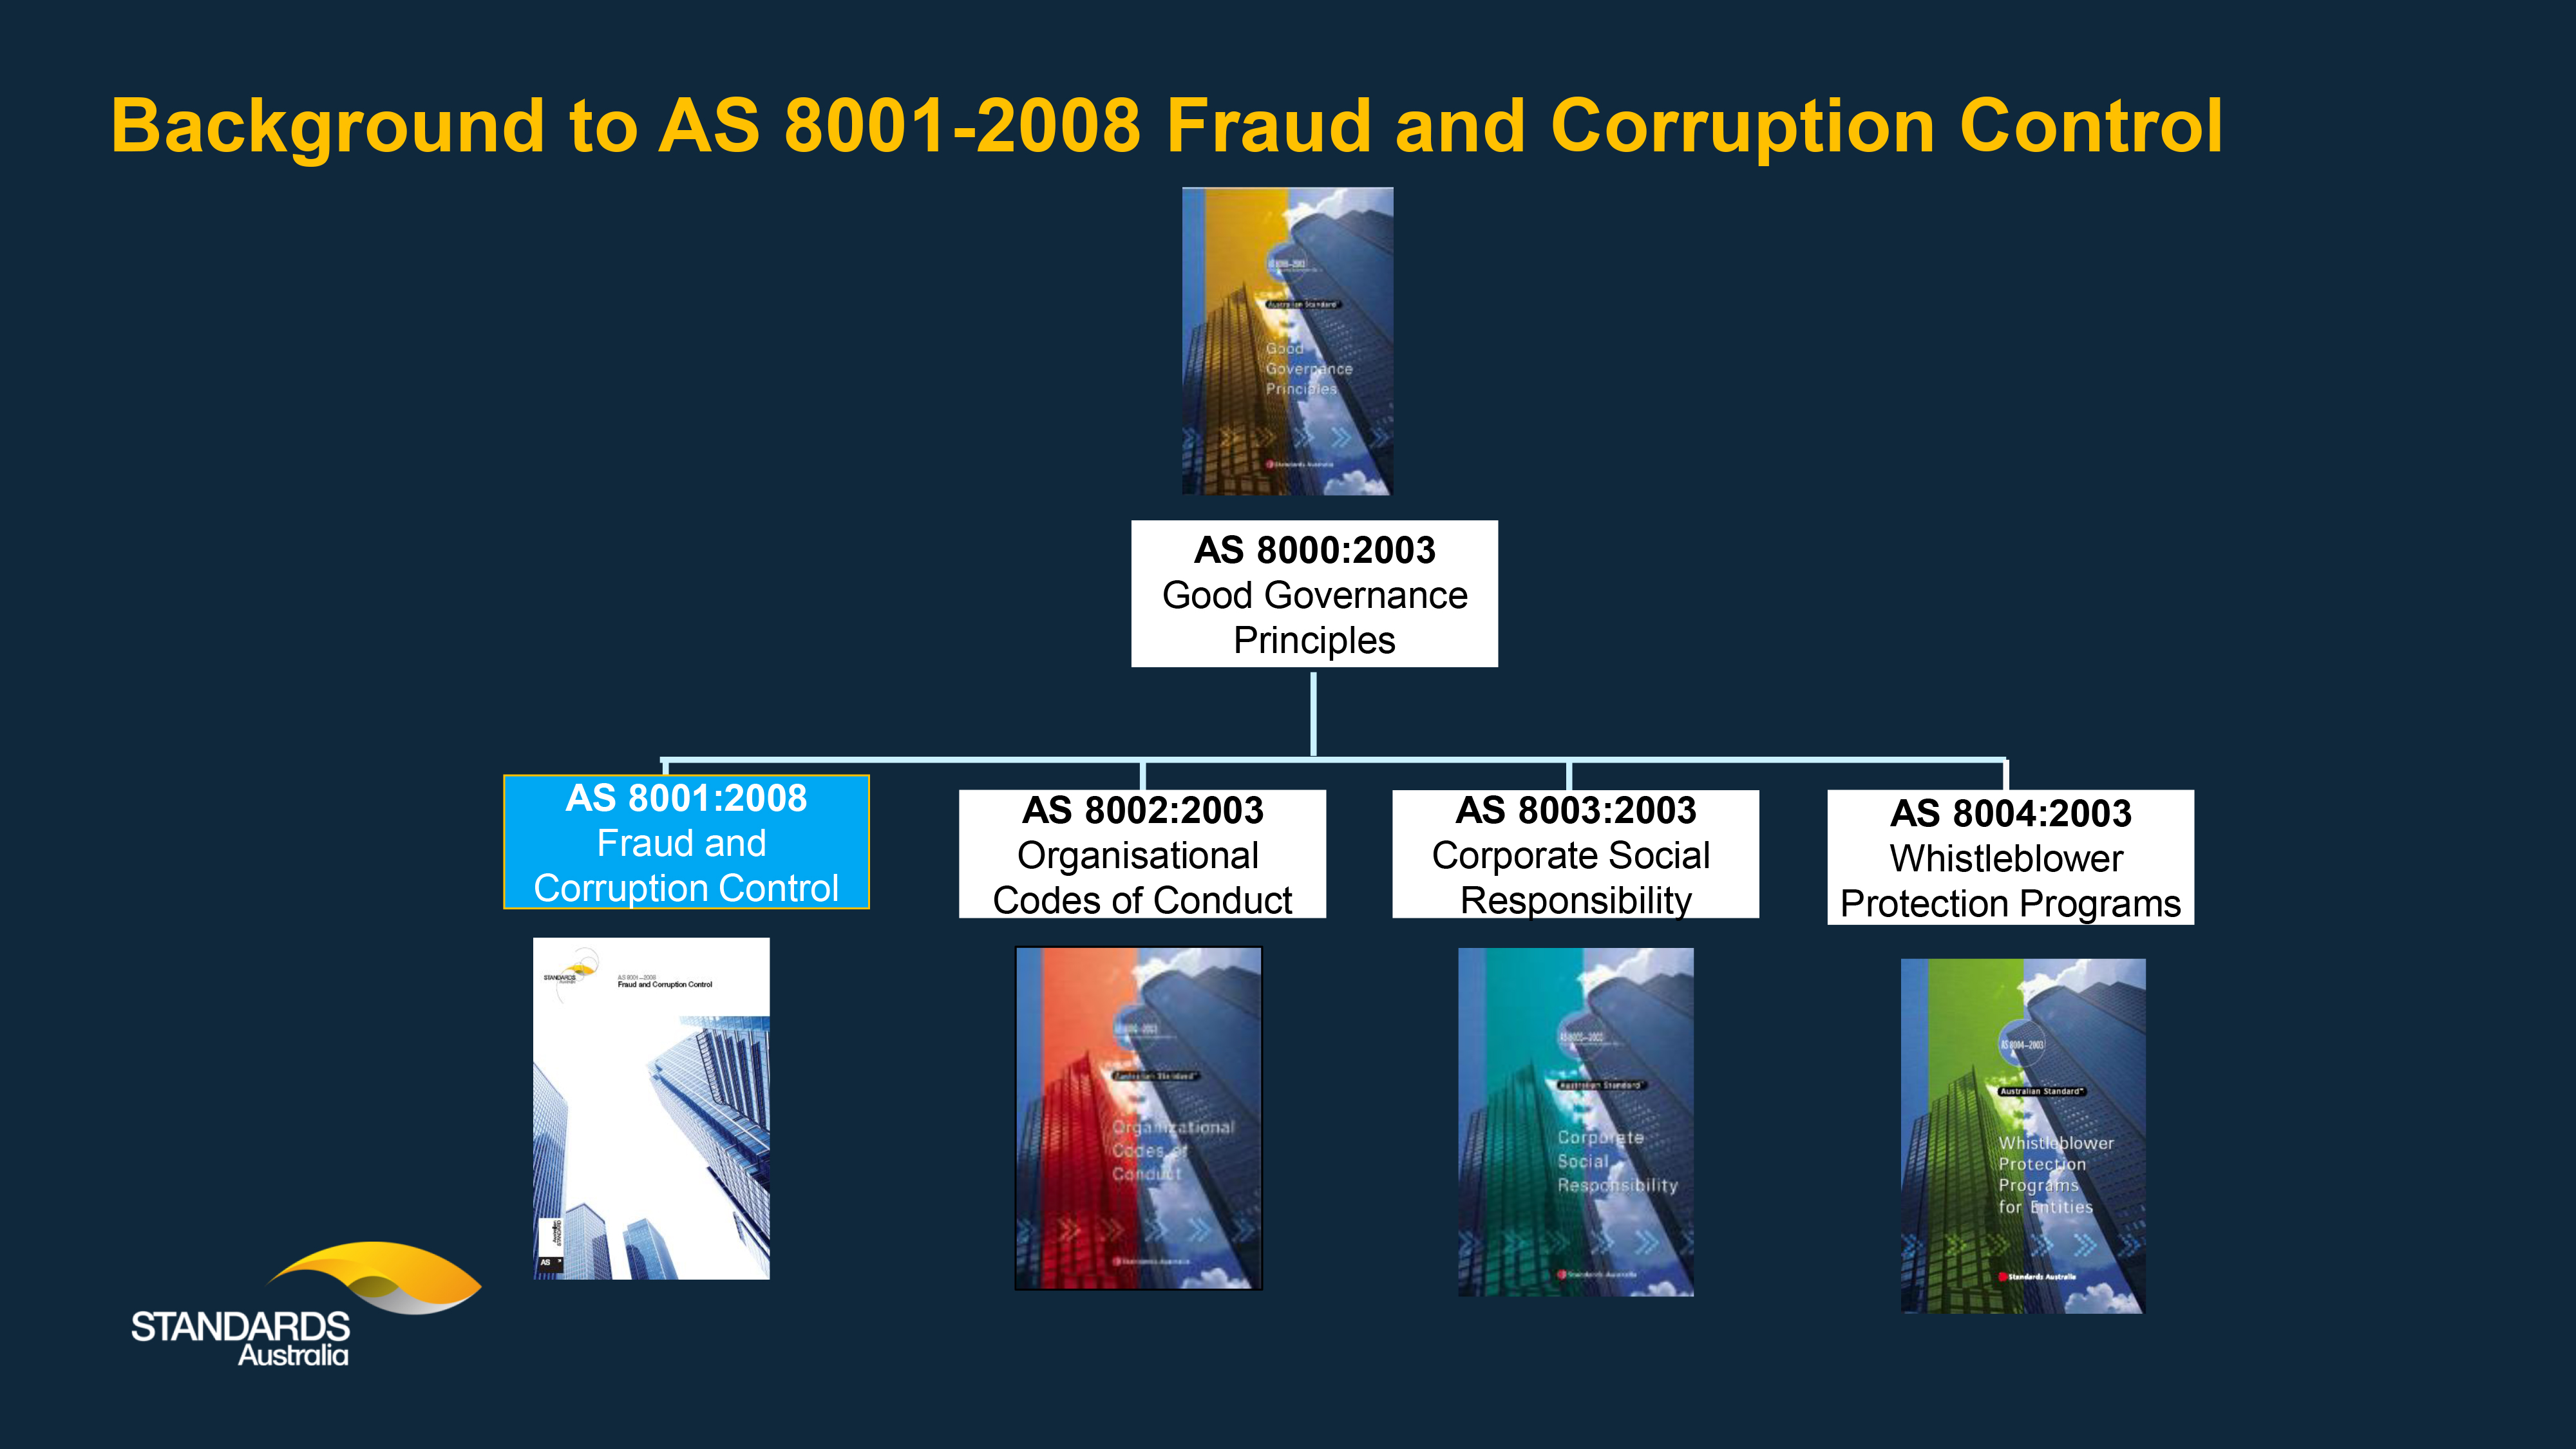 Background to AS 8001-2008